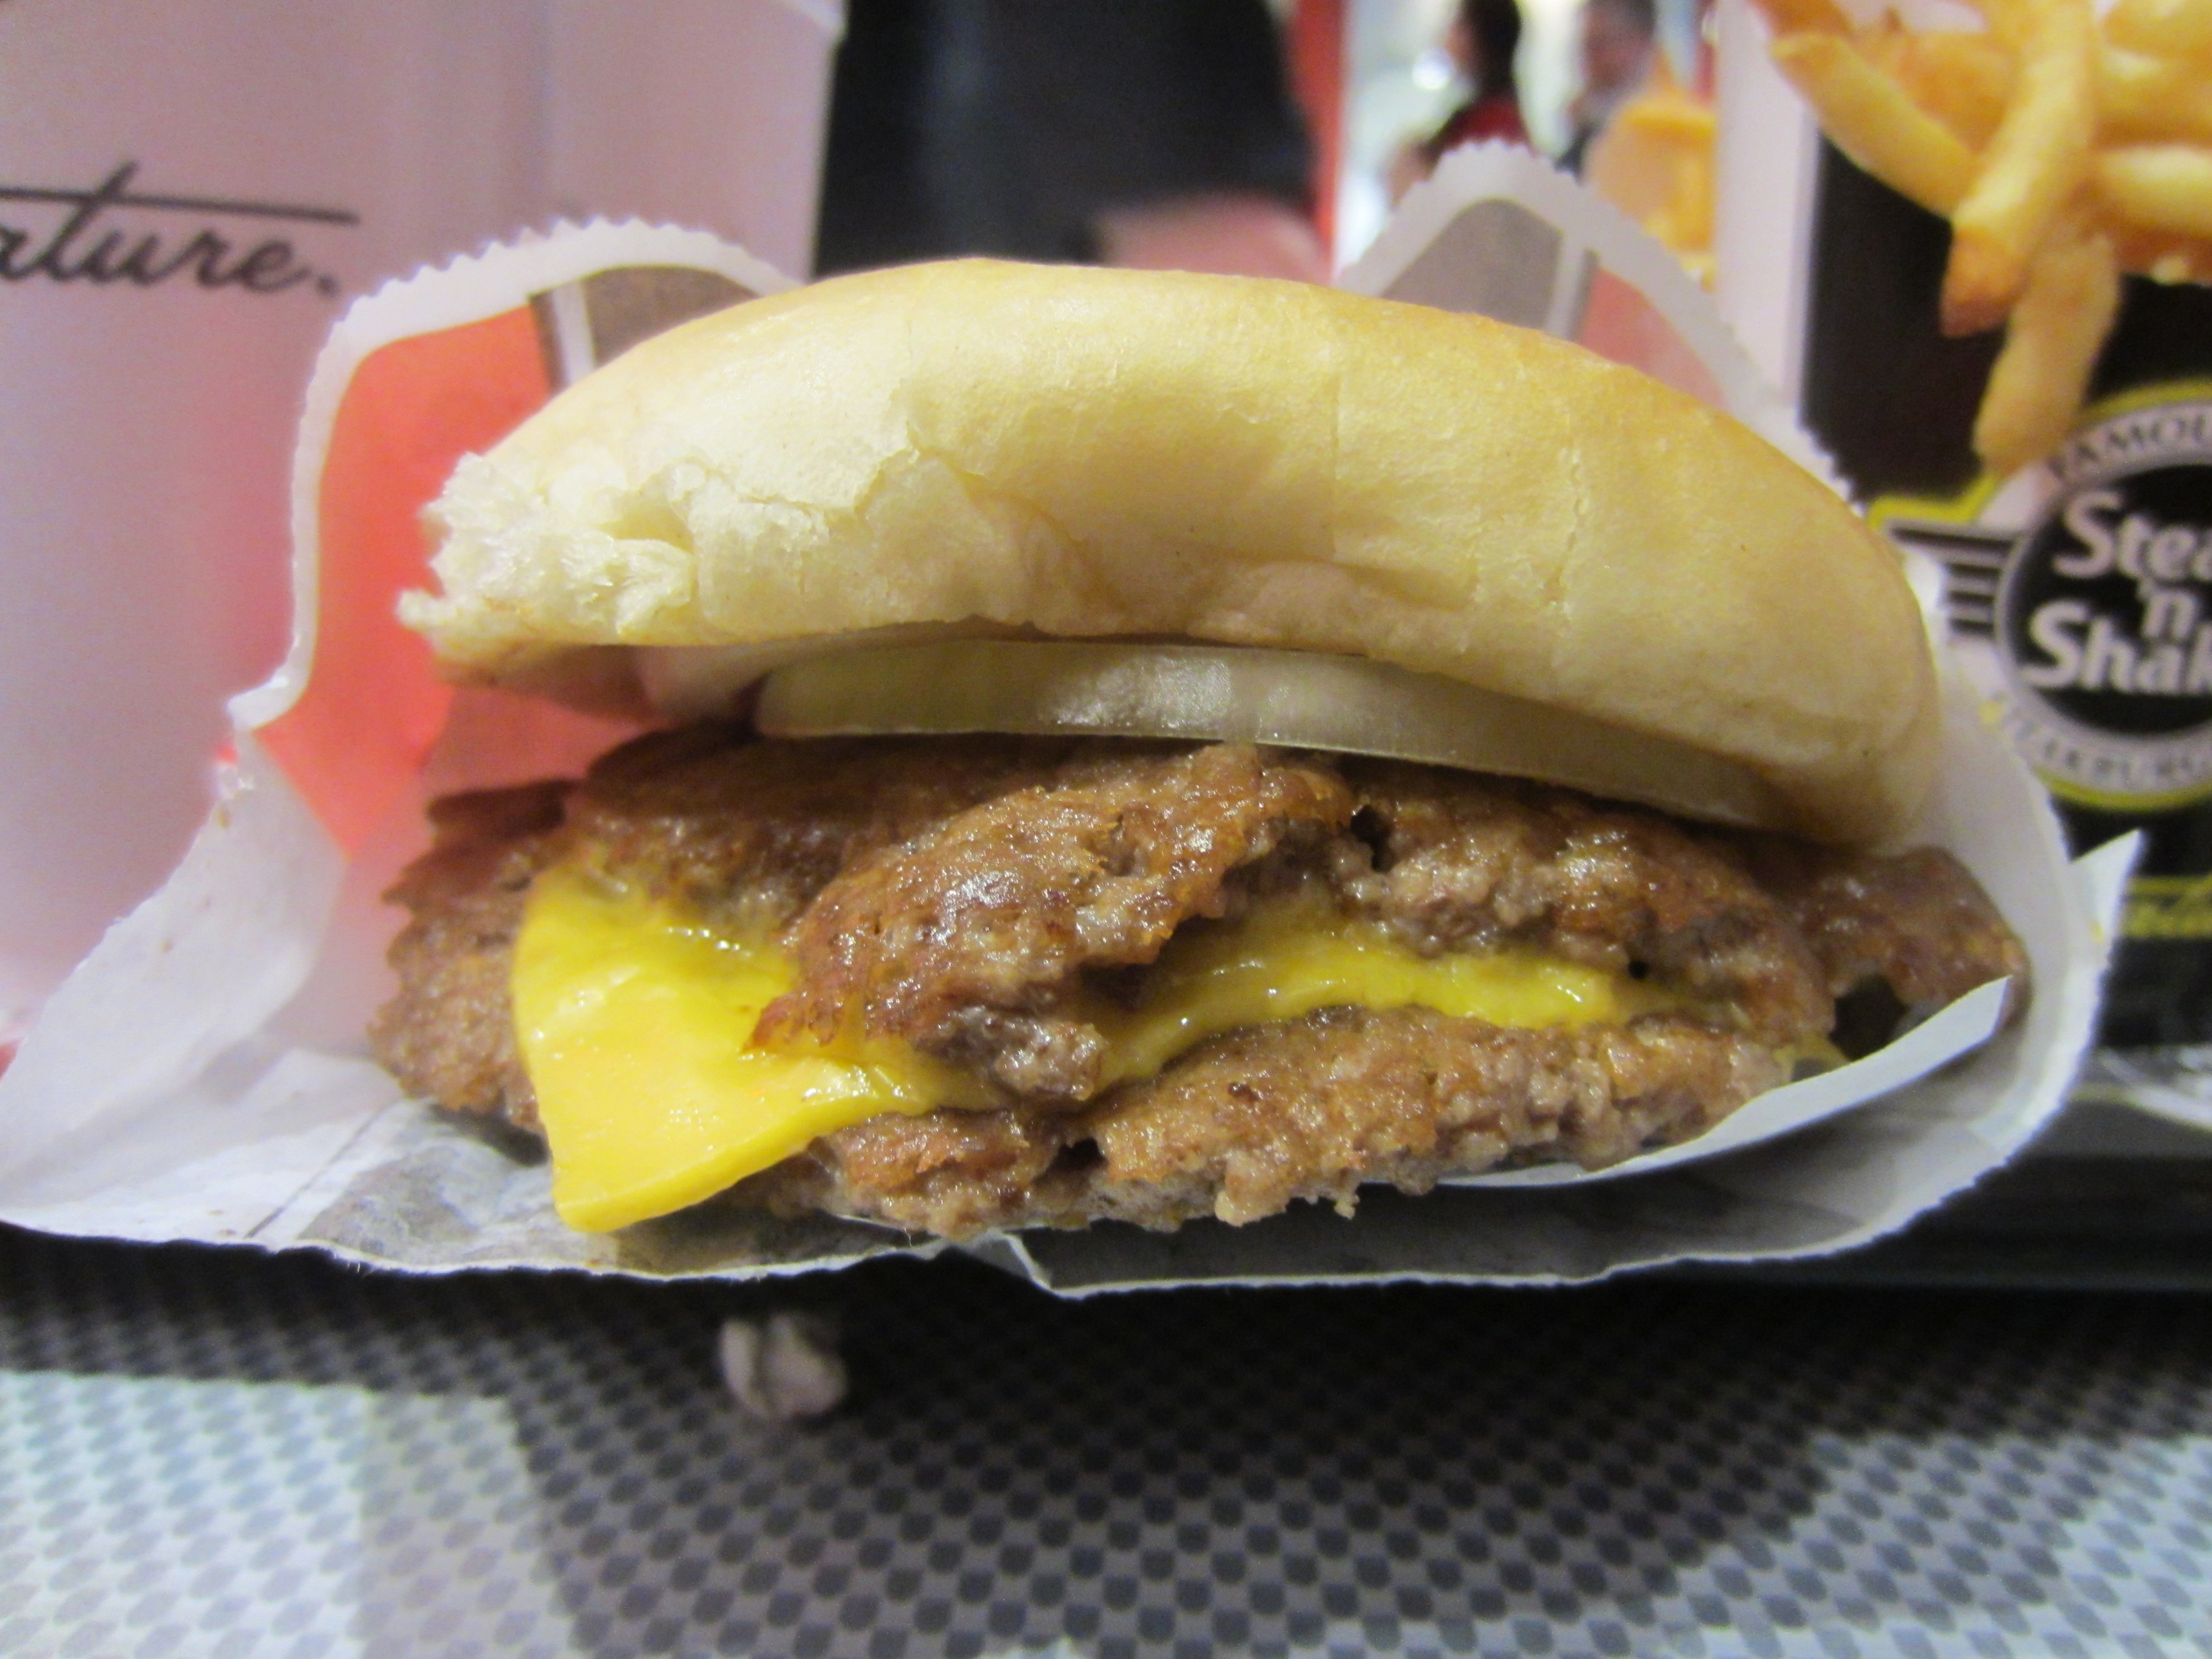 Steak N Shake Now In Nyc Burger Conquest